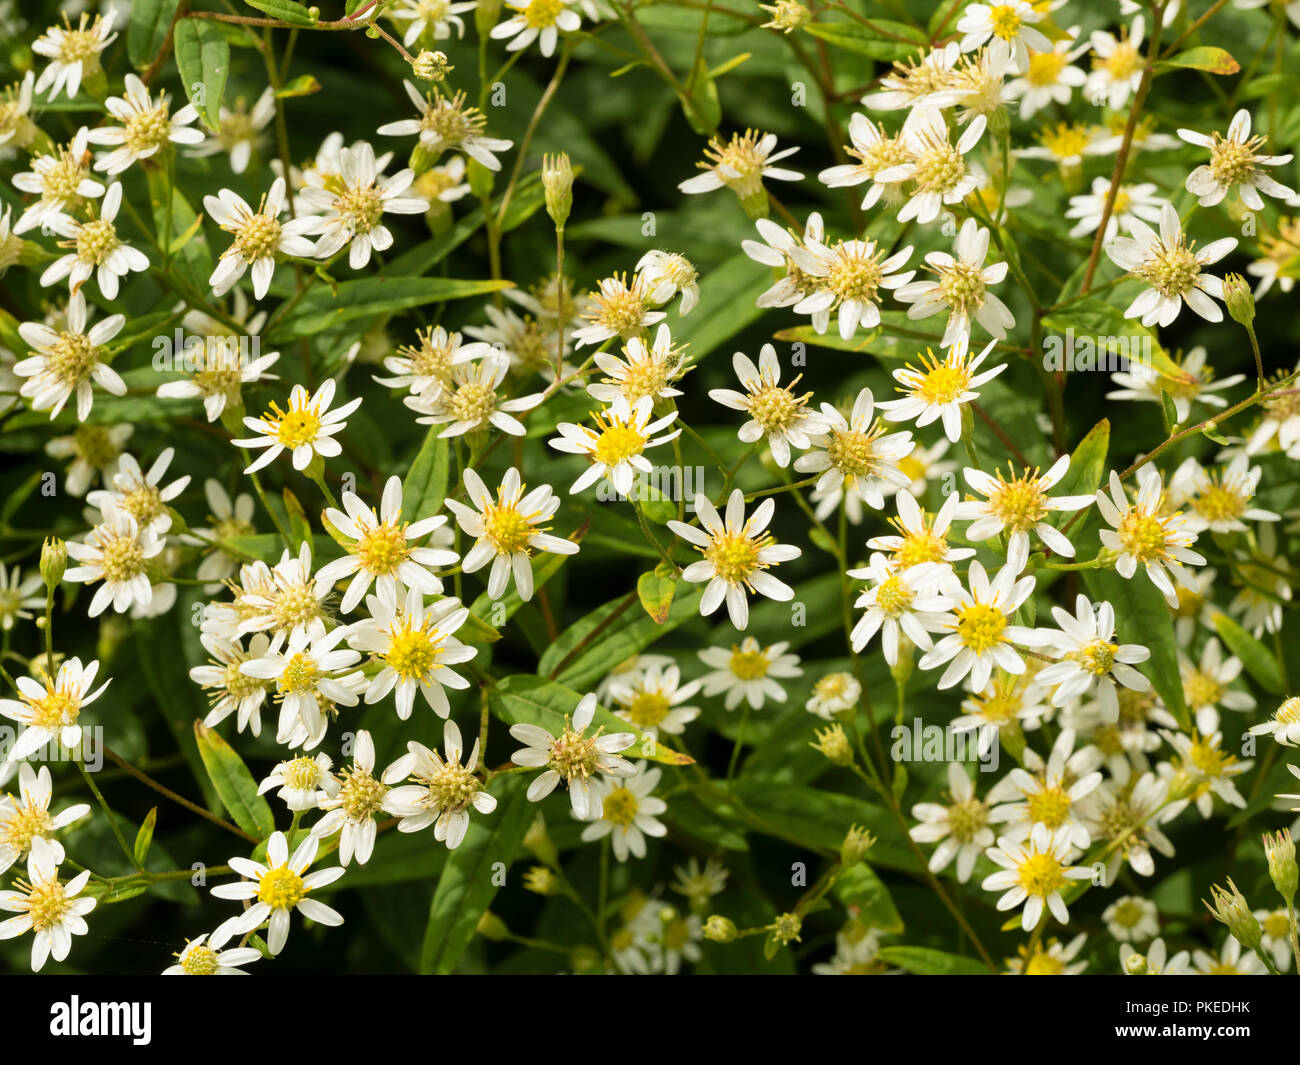 Daisy Like White Flowers Of The North American Flat Top Aster